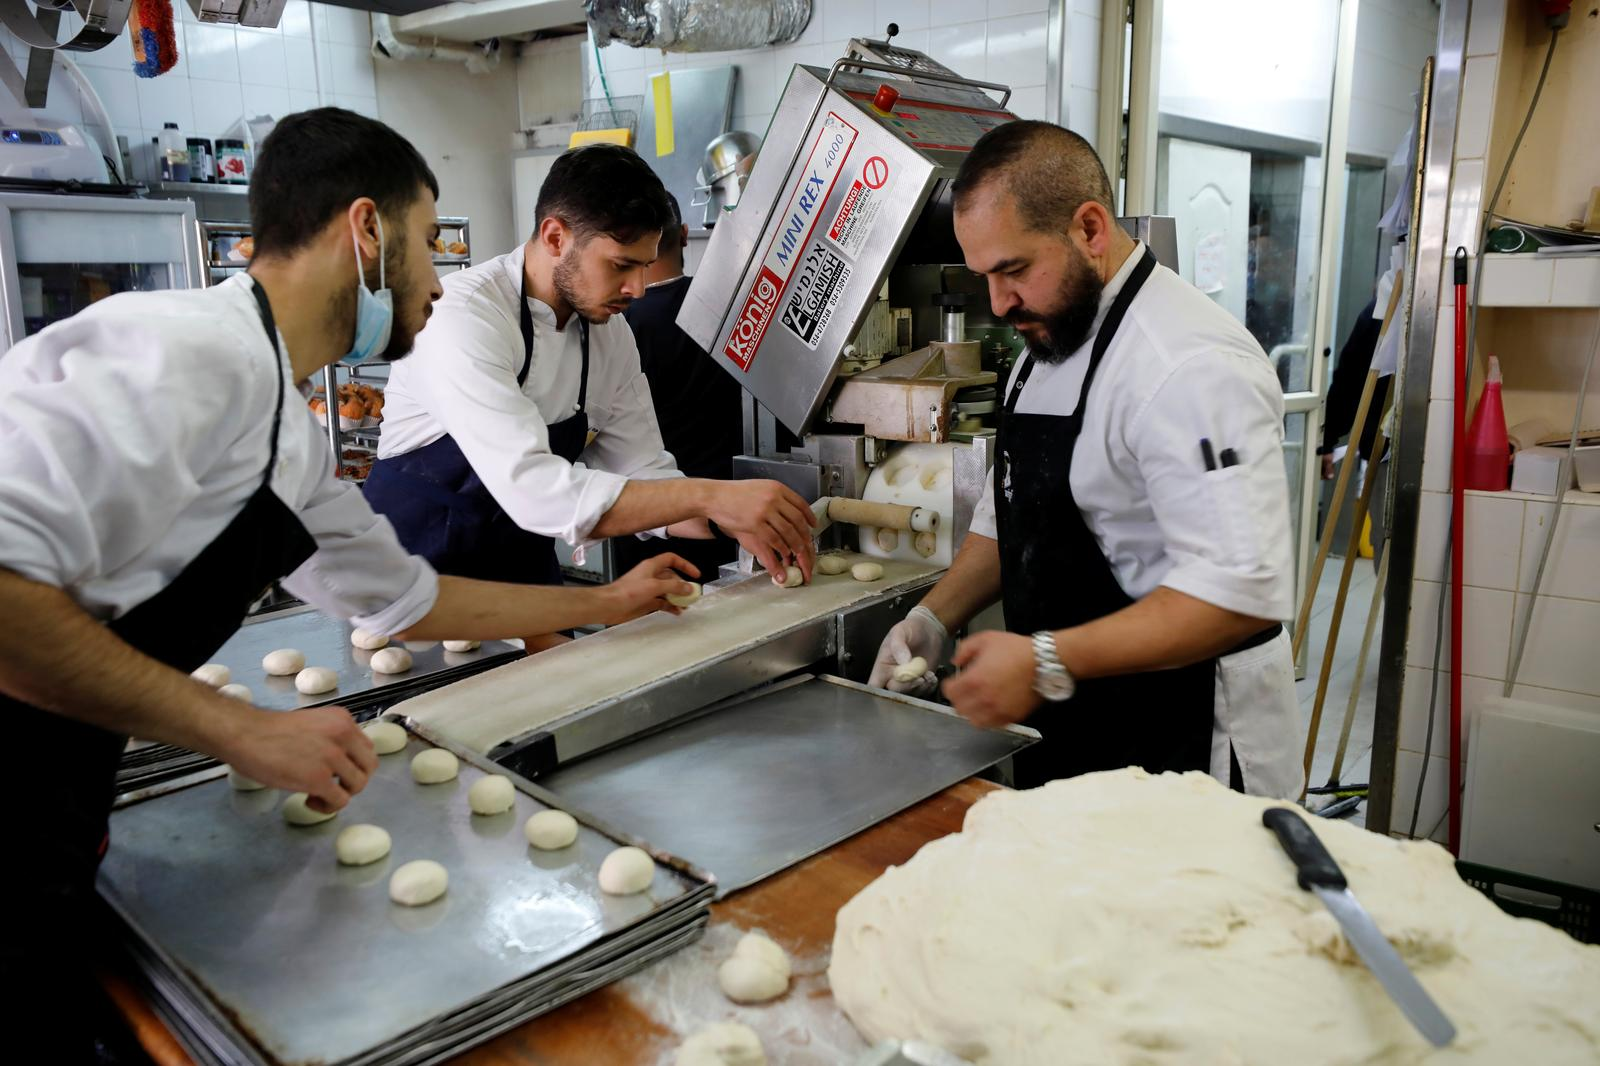 Confectioners make 'Abu Dhabi' doughnuts, a date-flavoured confectionery inspired by Israel's new relations with the United Arab Emirates, as doughnuts are a popular fare in Israel during the current holiday of Hanukkah, in which Jews traditionally eat deep-fried delicacies, at a patisserie in Jerusalem December 13, 2020. Photo: Reuters